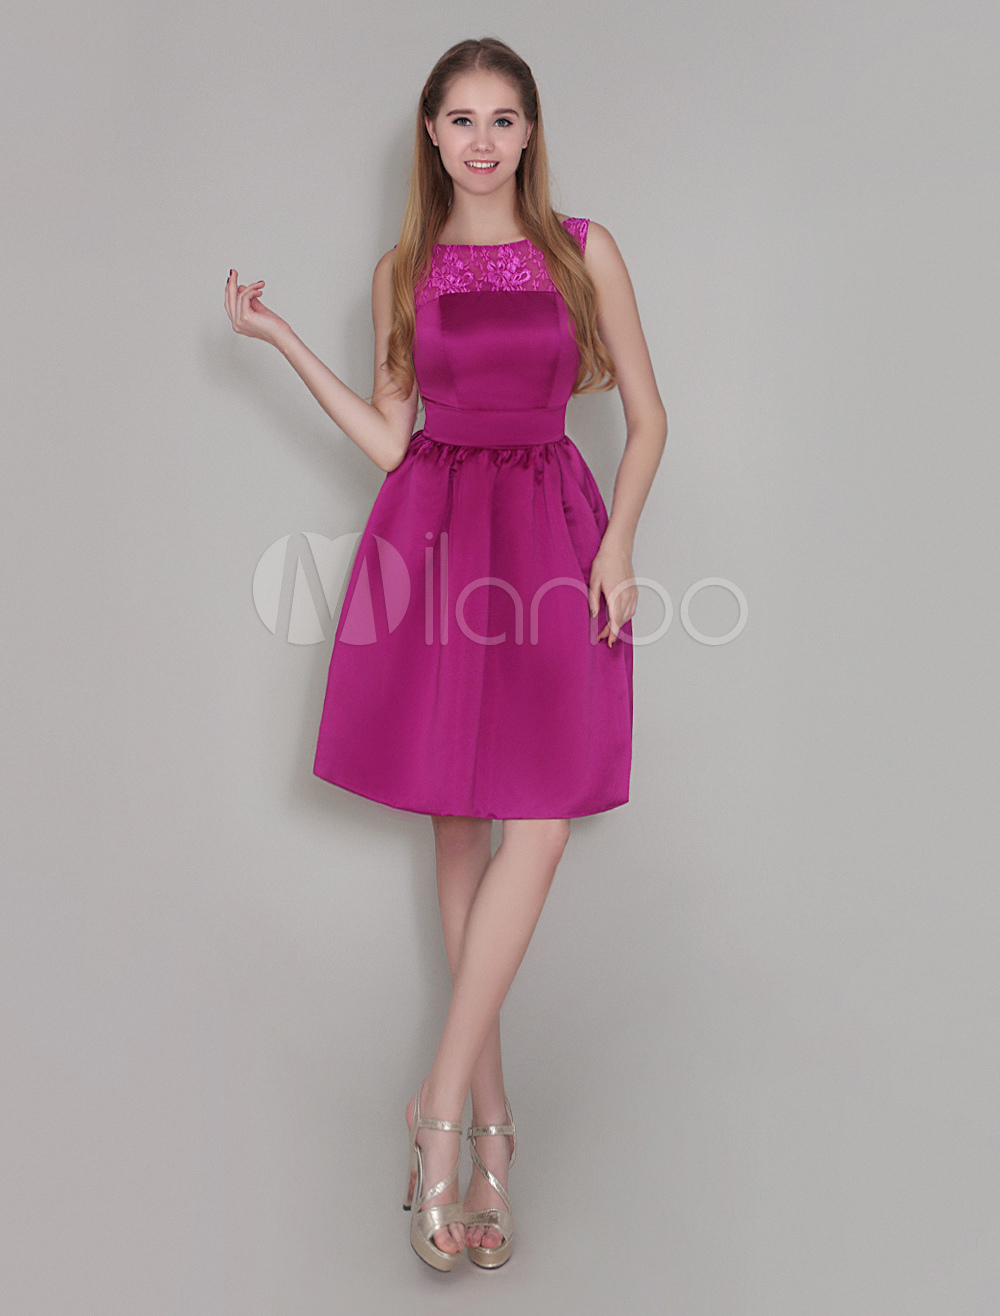 Buy Magenta Bridesmaid Dress Satin Pleated Cocktail Dress Backless Jewel Neck Sleeveless Knee Length Wedding Party Dress Wedding Guest Dress for $89.99 in Milanoo store